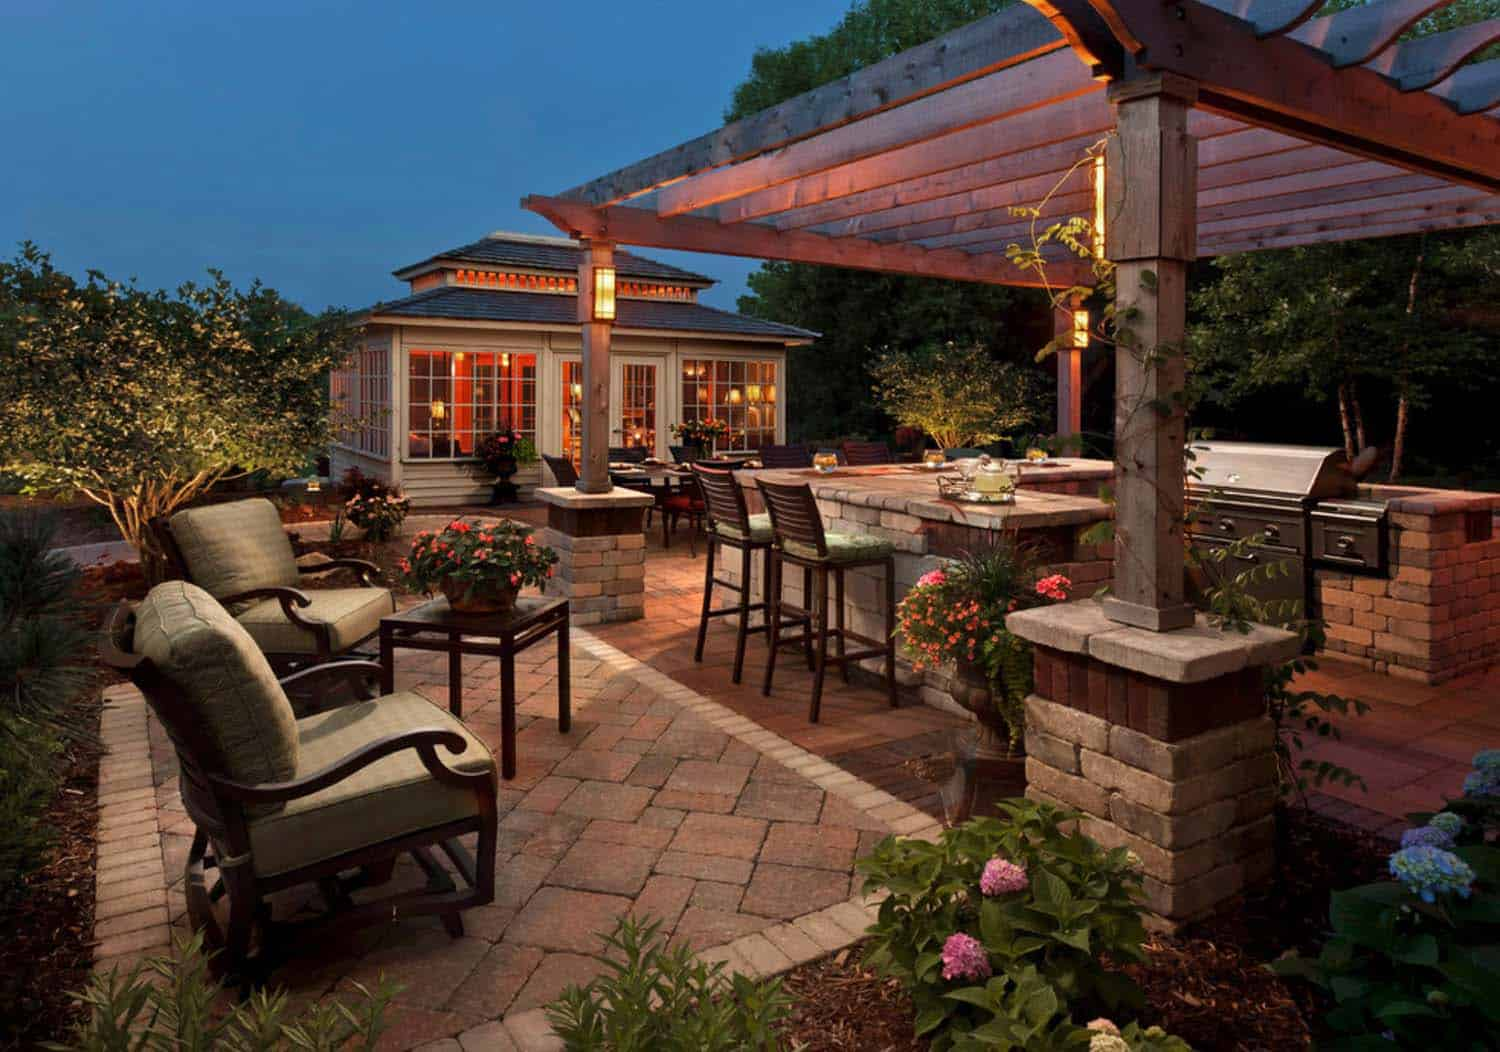 44 Traditional outdoor patio designs to capture your ... on Backyard Patio Designs  id=67547